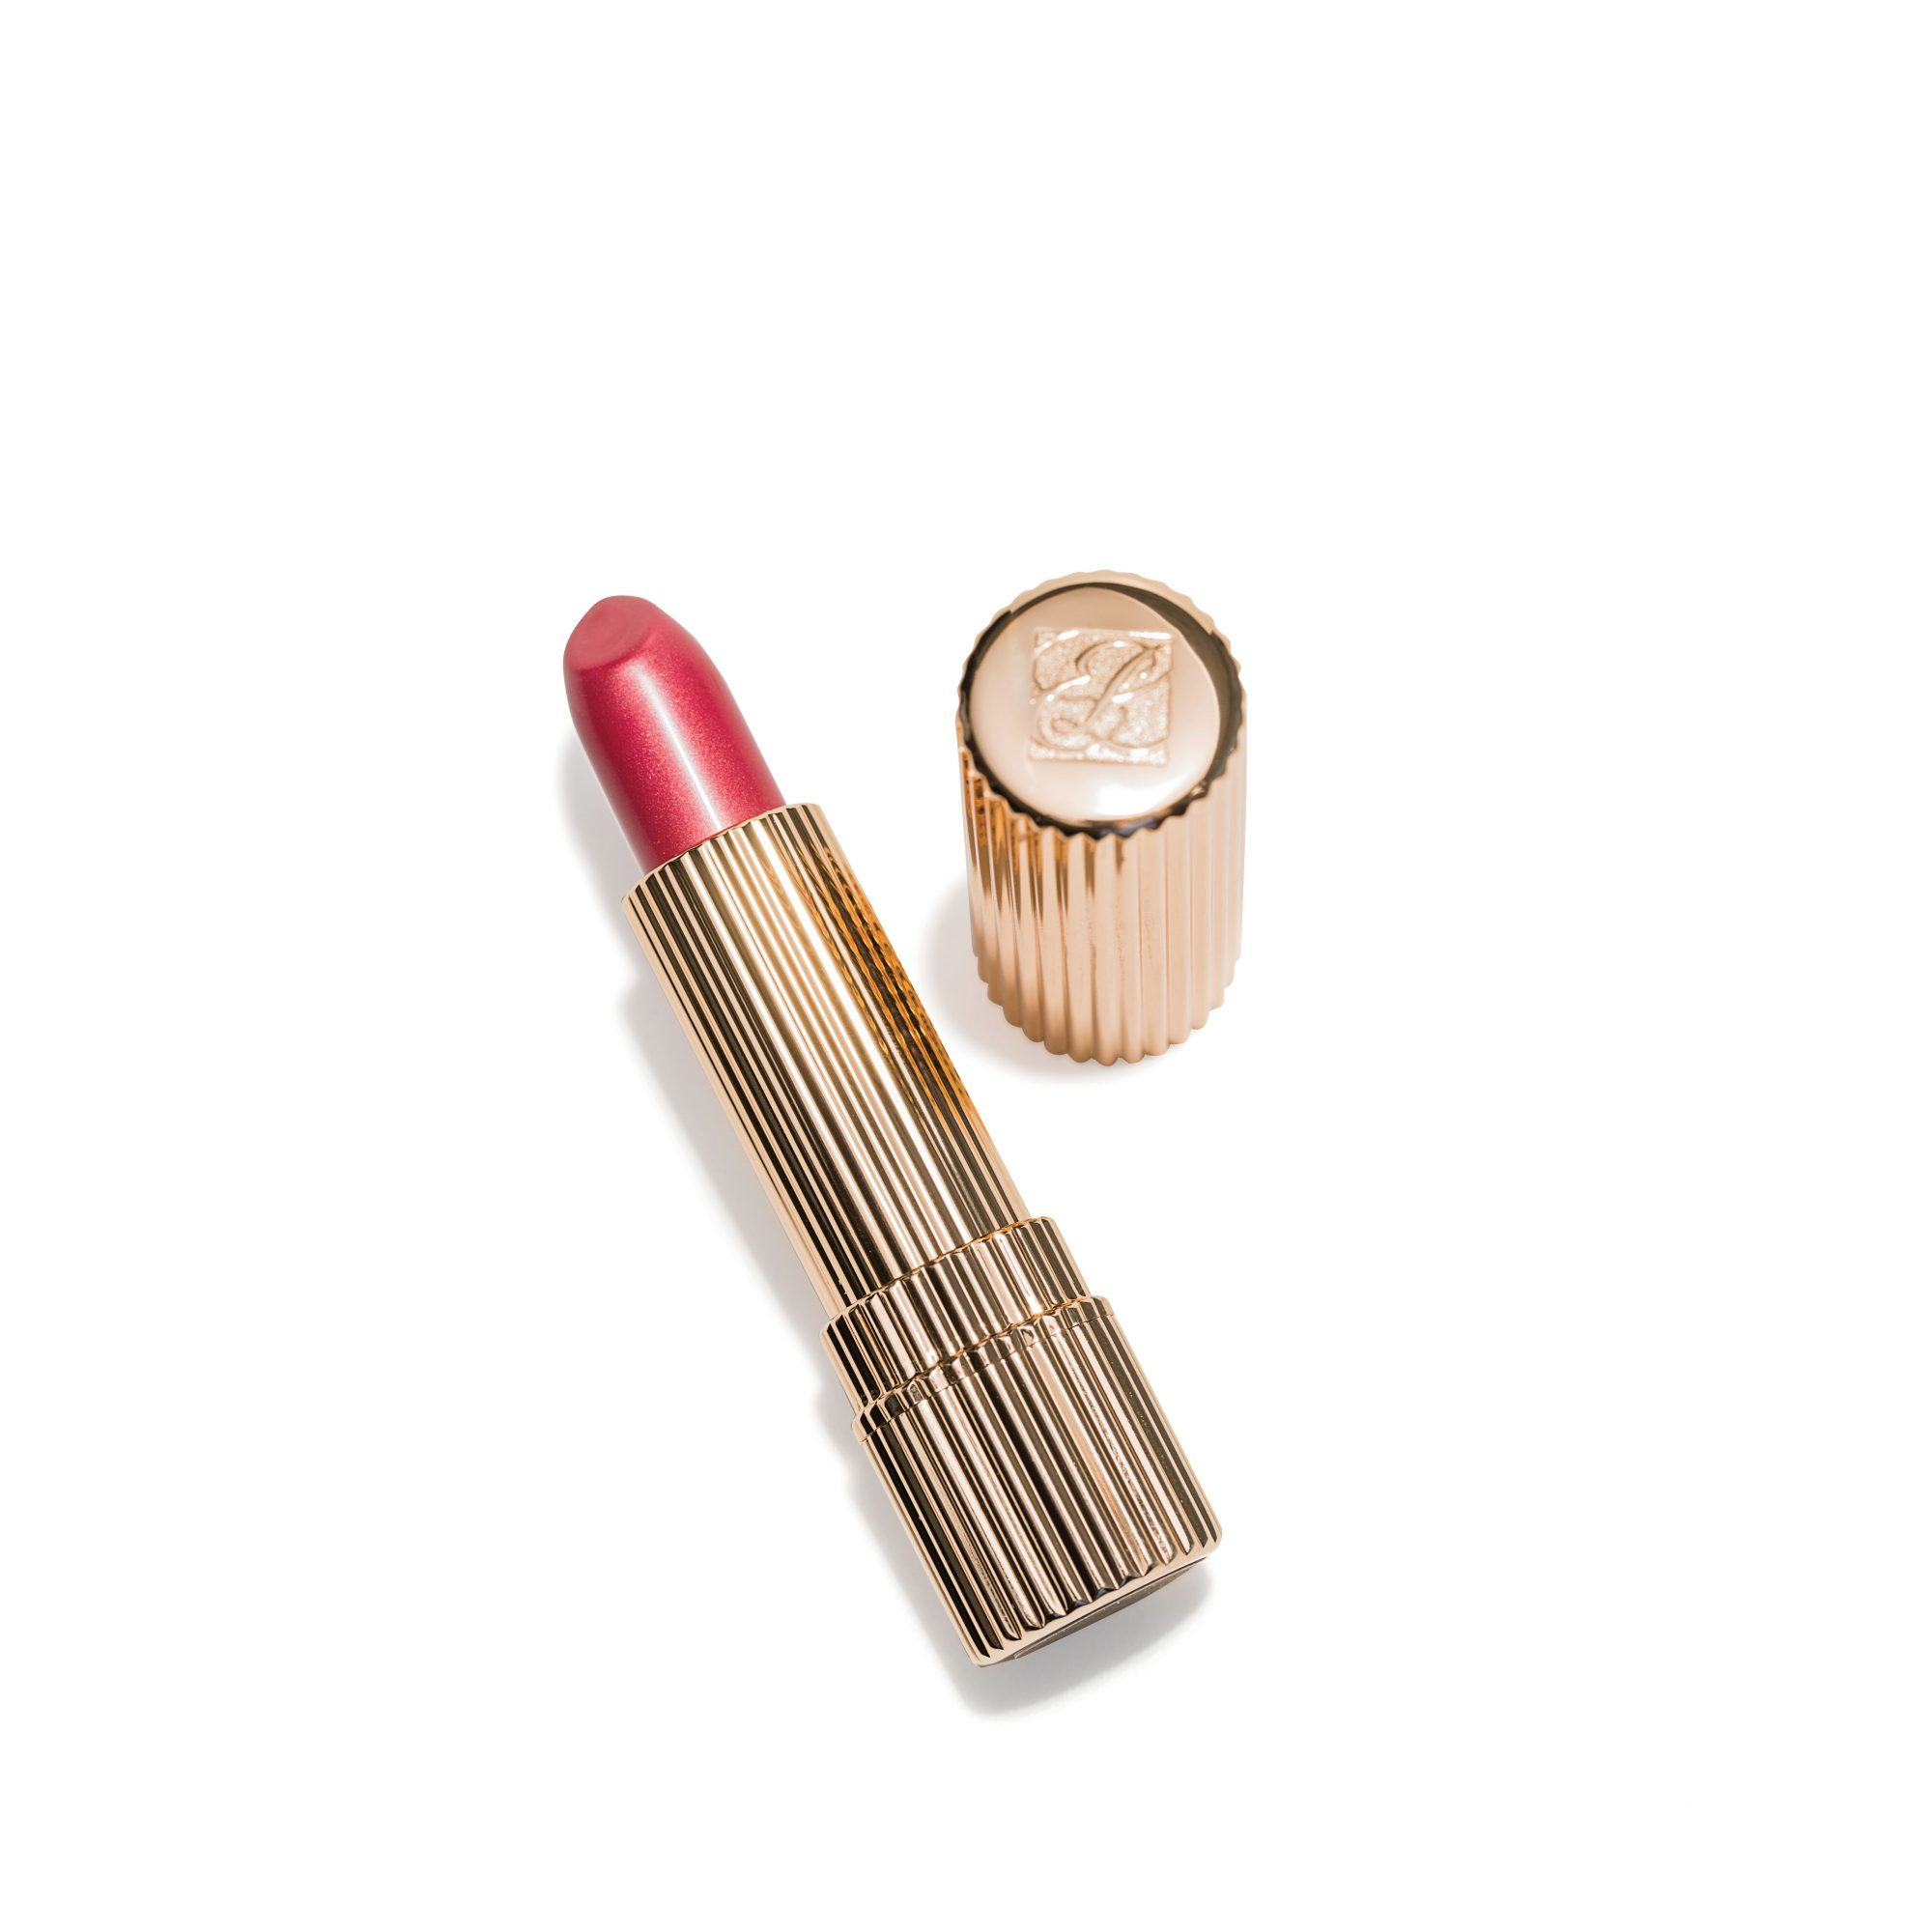 Estee Lauder All-Day Lipstick in Starlit Pink